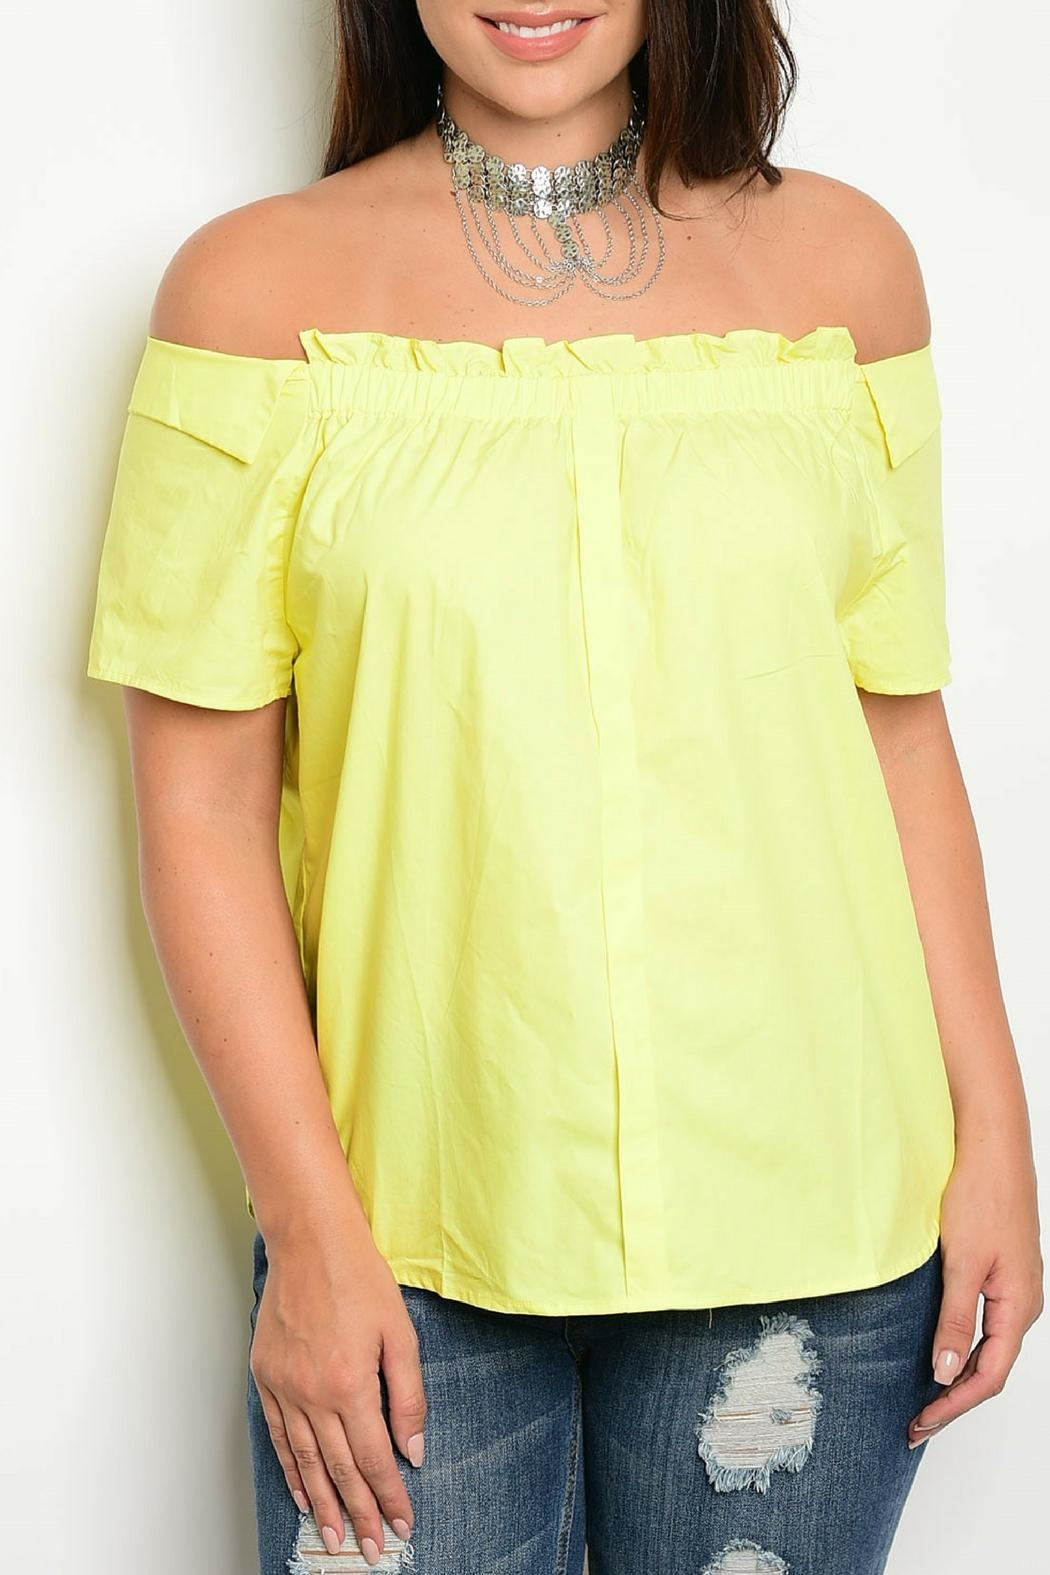 C.O.C Yellow Ruffle Top - Front Cropped Image